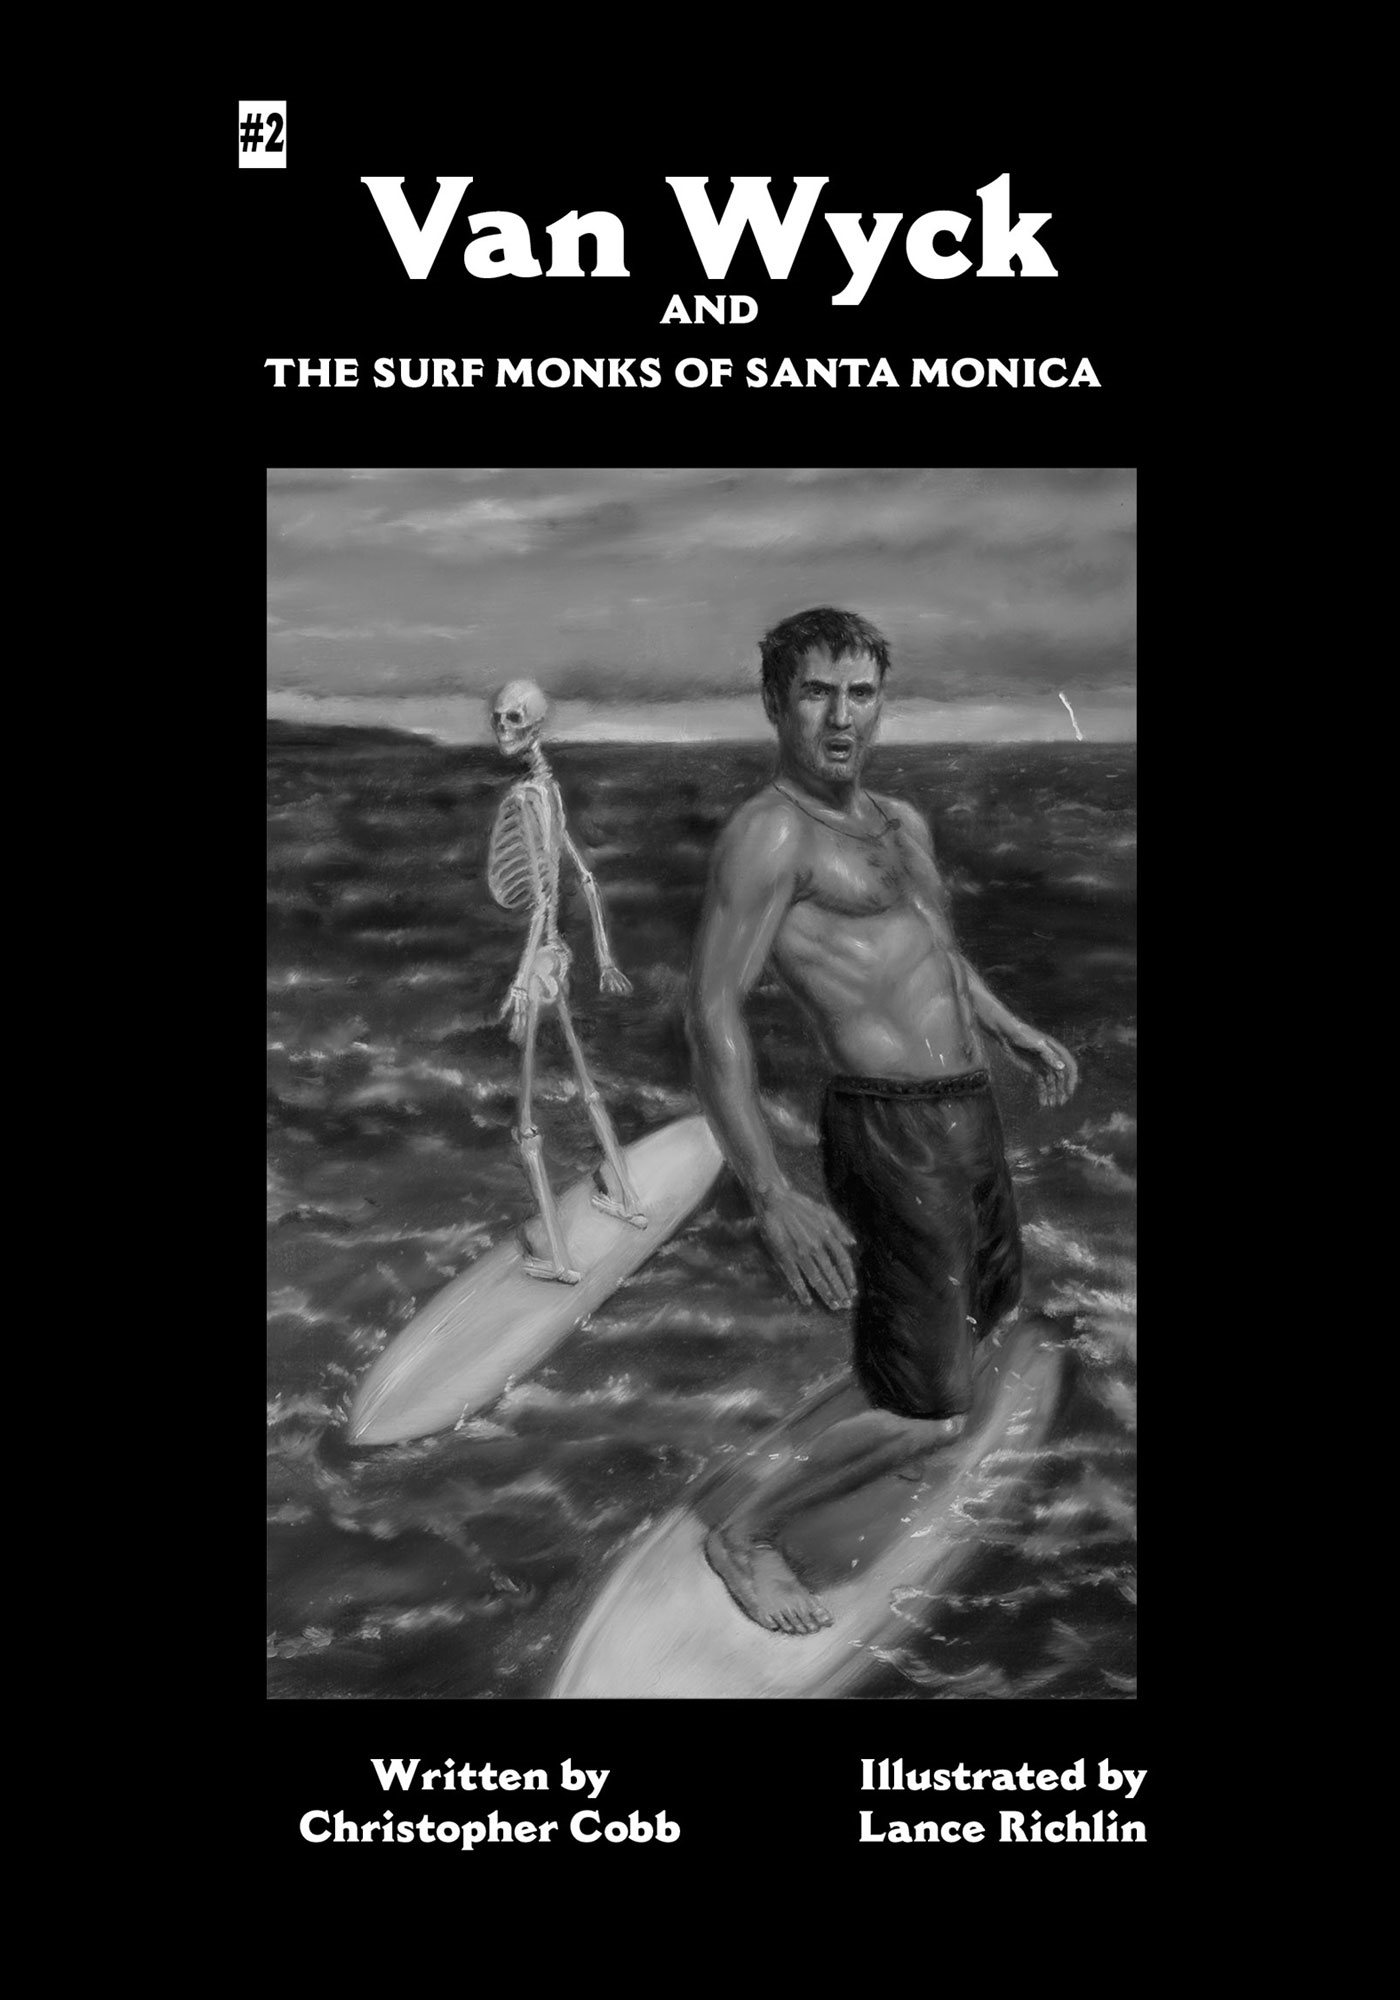 Van Wyck and the Surf Monks of Santa Monica